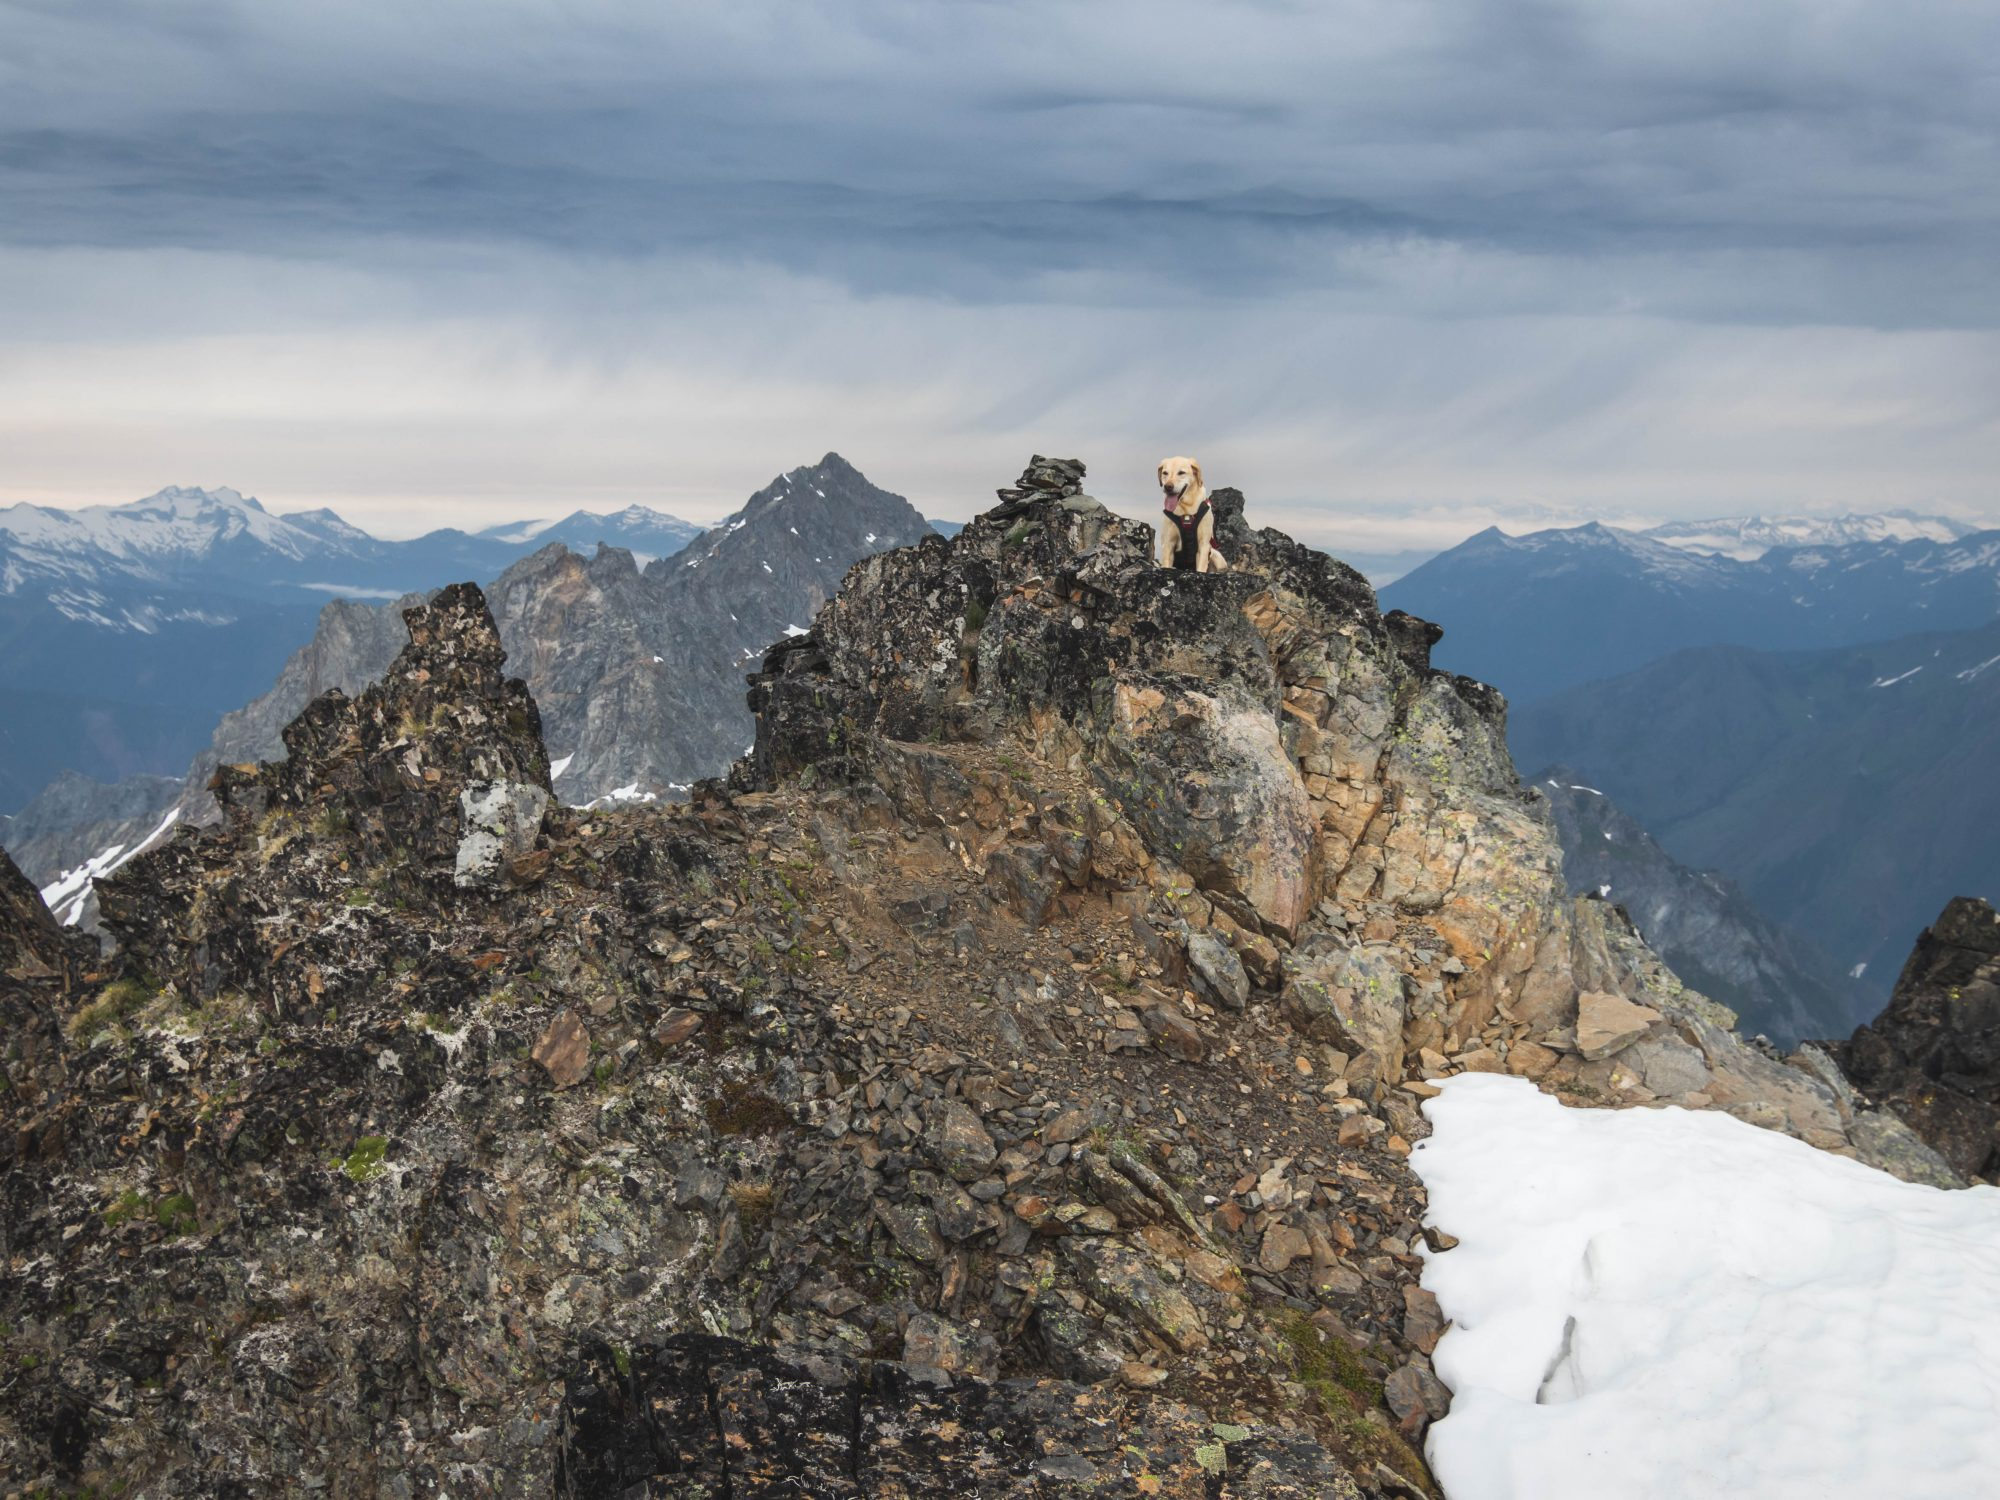 Summit dogs on Spider Mountain